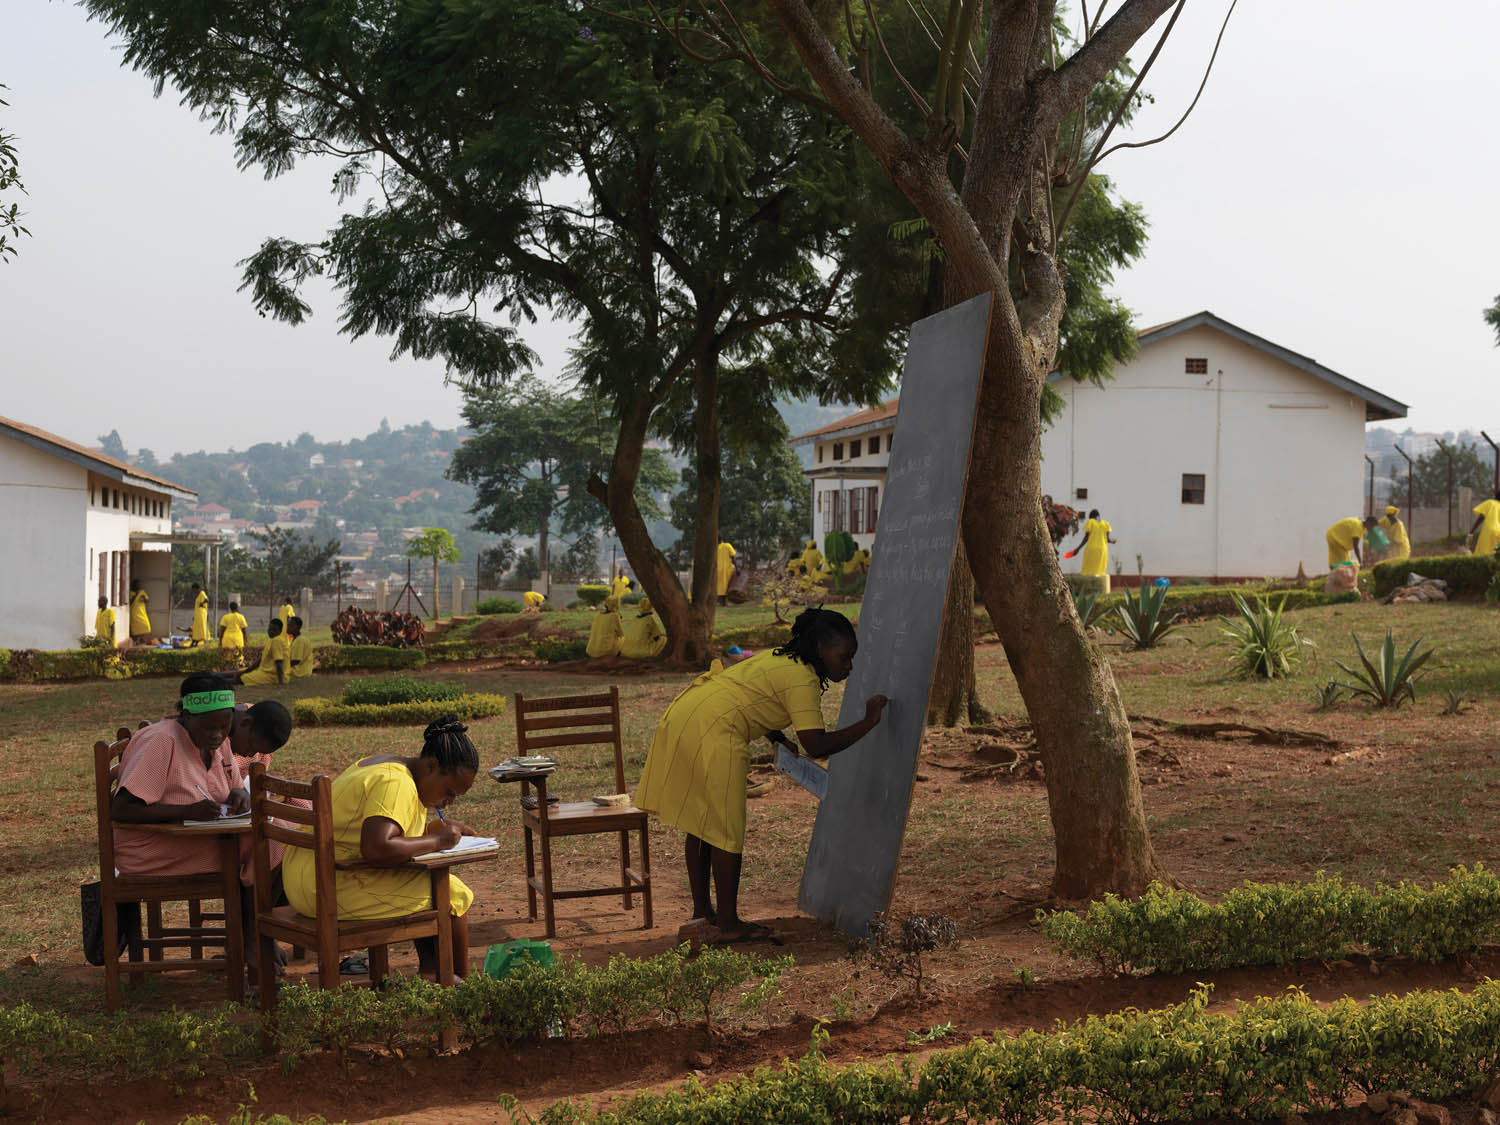 Luzira Women's Prison, which holds an estimated 370 women and thirty children. Kampala, Uganda, 2013. Photograph by Jan Banning.